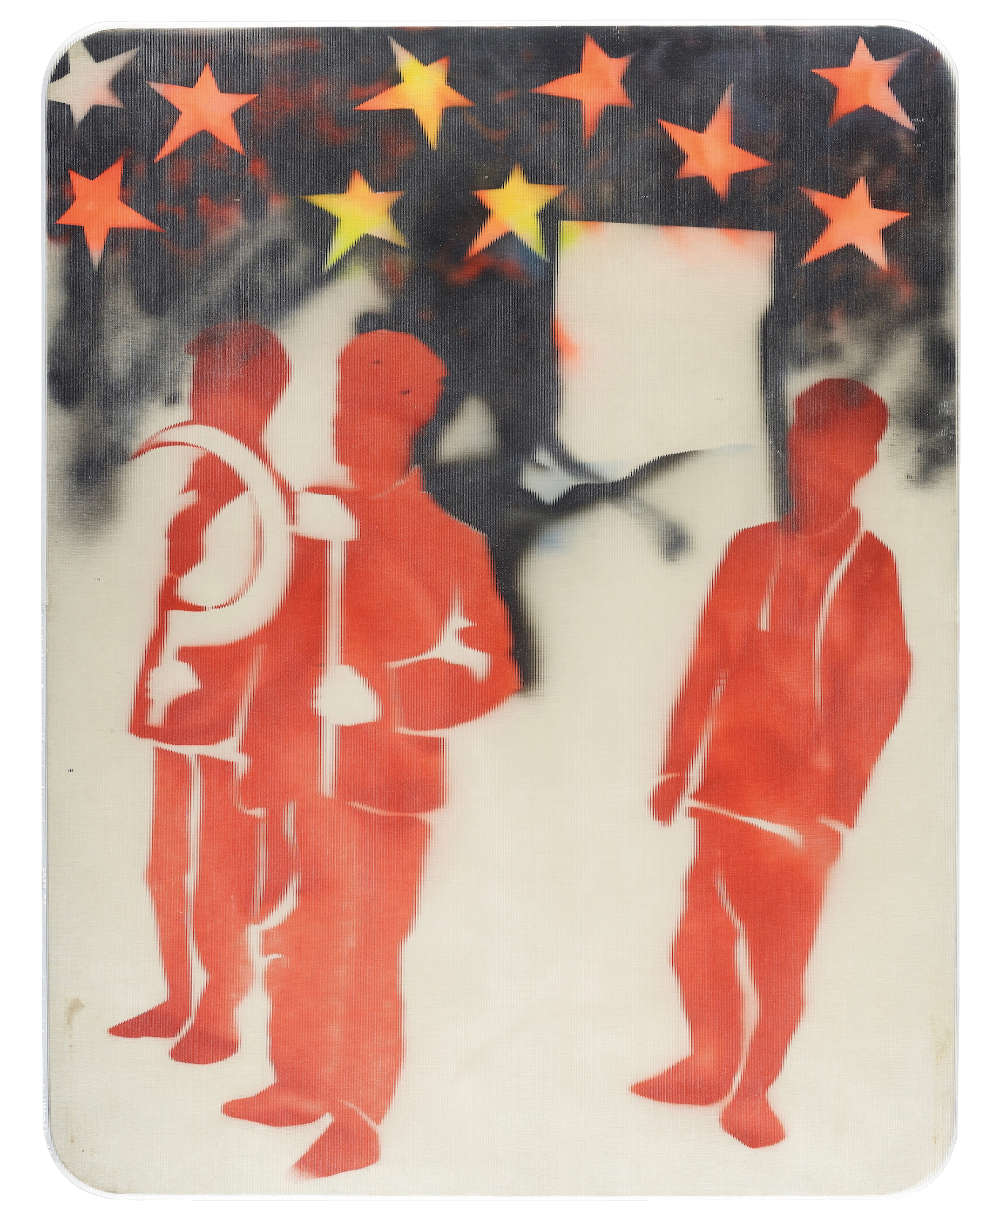 Mario Schifano, Compagni, compagni, 1968. Enamel and spray paint on canvas and Perspex 131 x 101 cm 51 5/8 x 39 3/4 inches